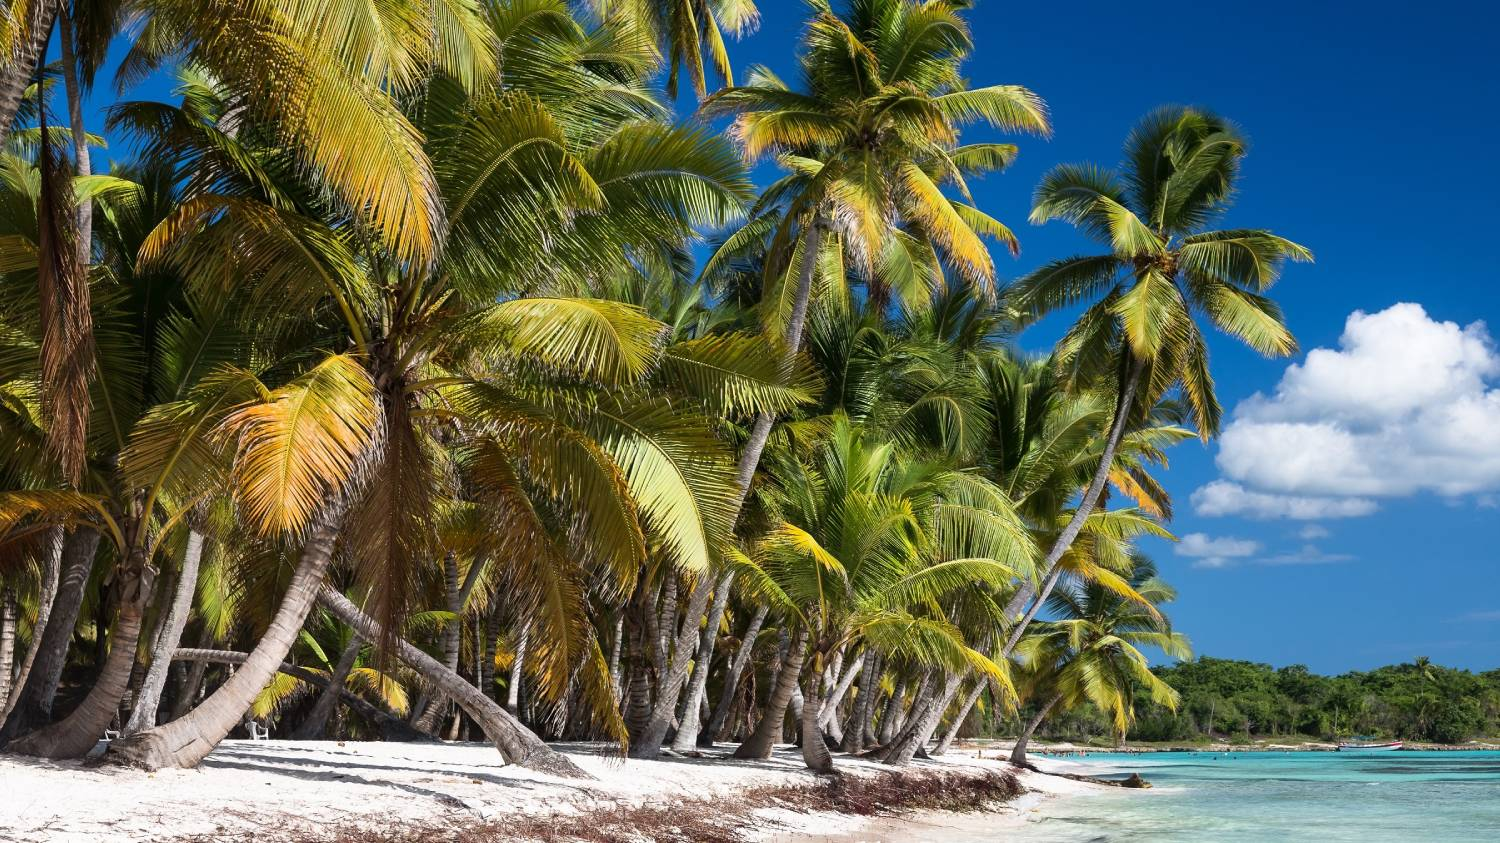 La Romana - The Best Places To Visit In The Dominican Republic